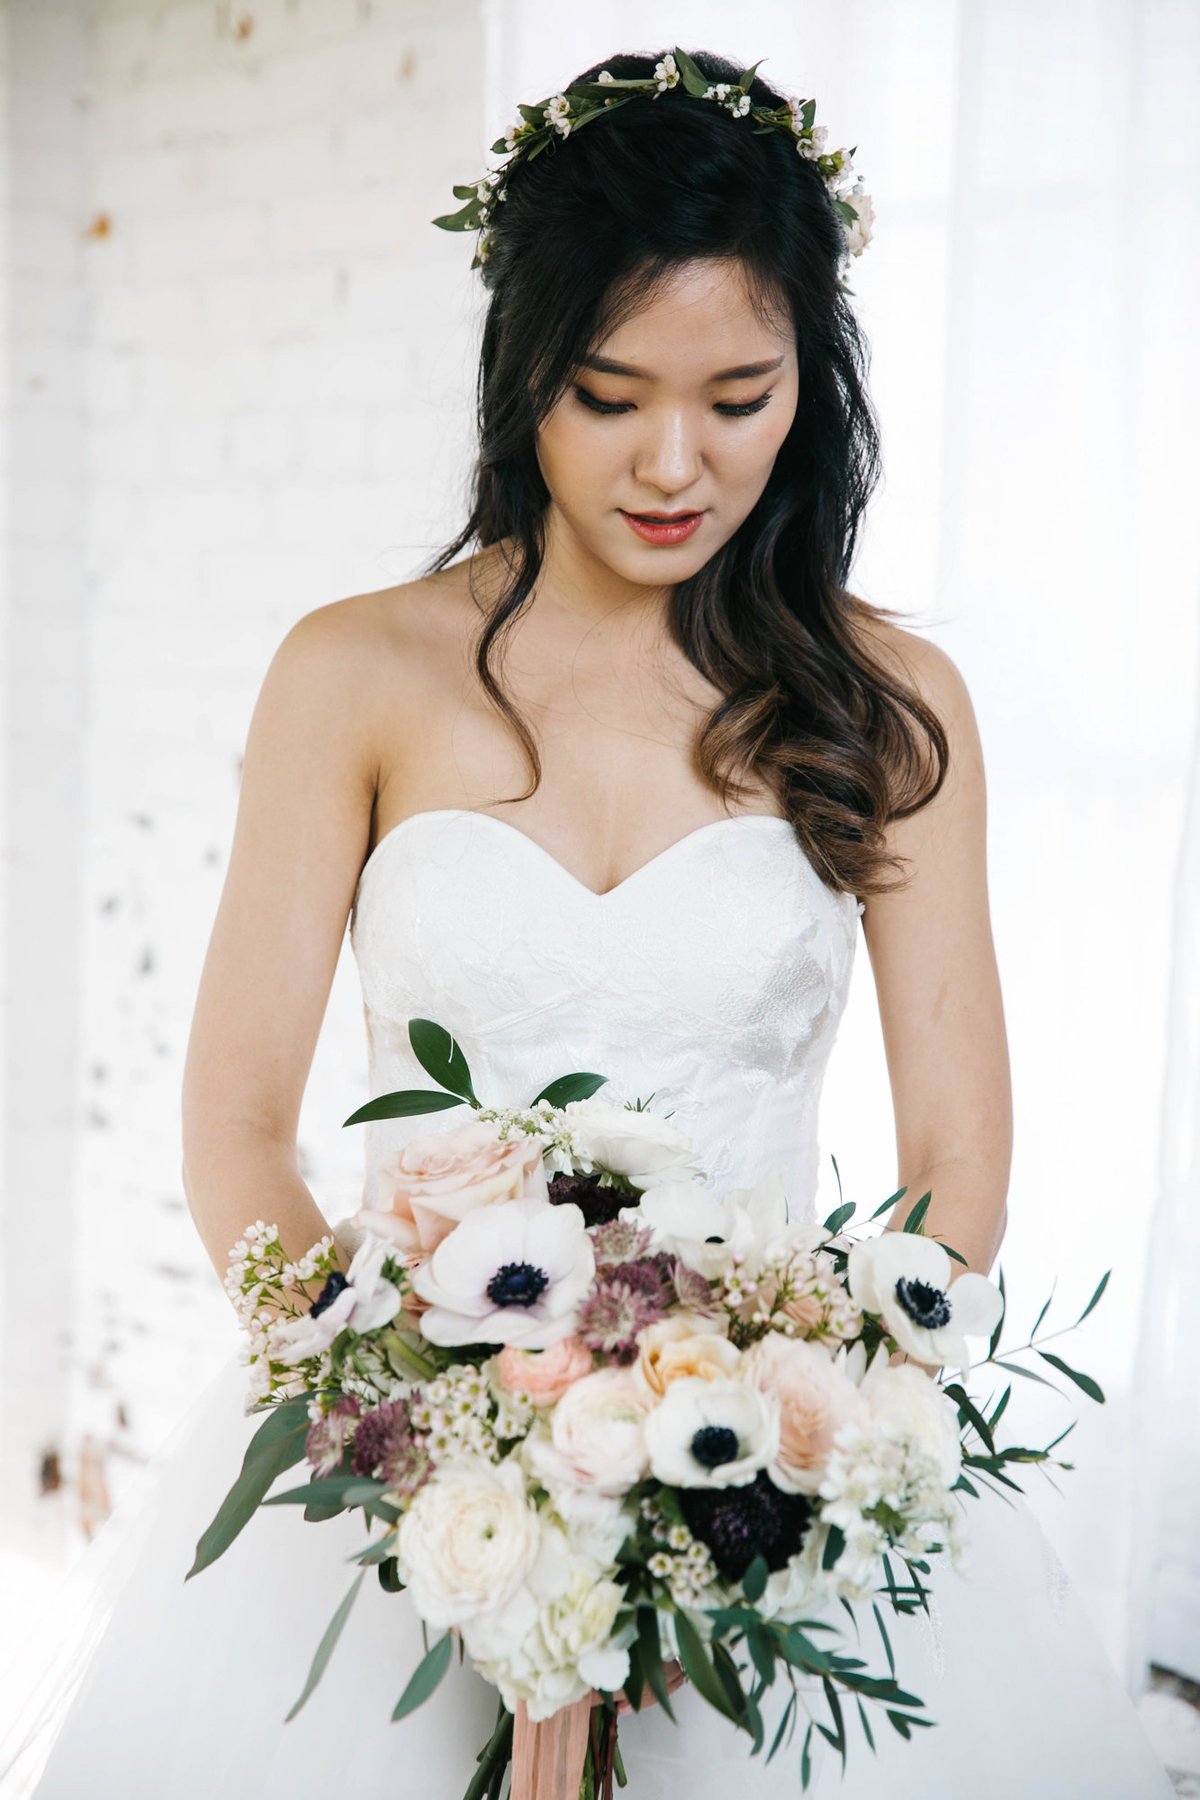 Dallas-Downtown-wedding-at-Hickory-Street-Annex-by-Julia-Sharapova-Photographer-64